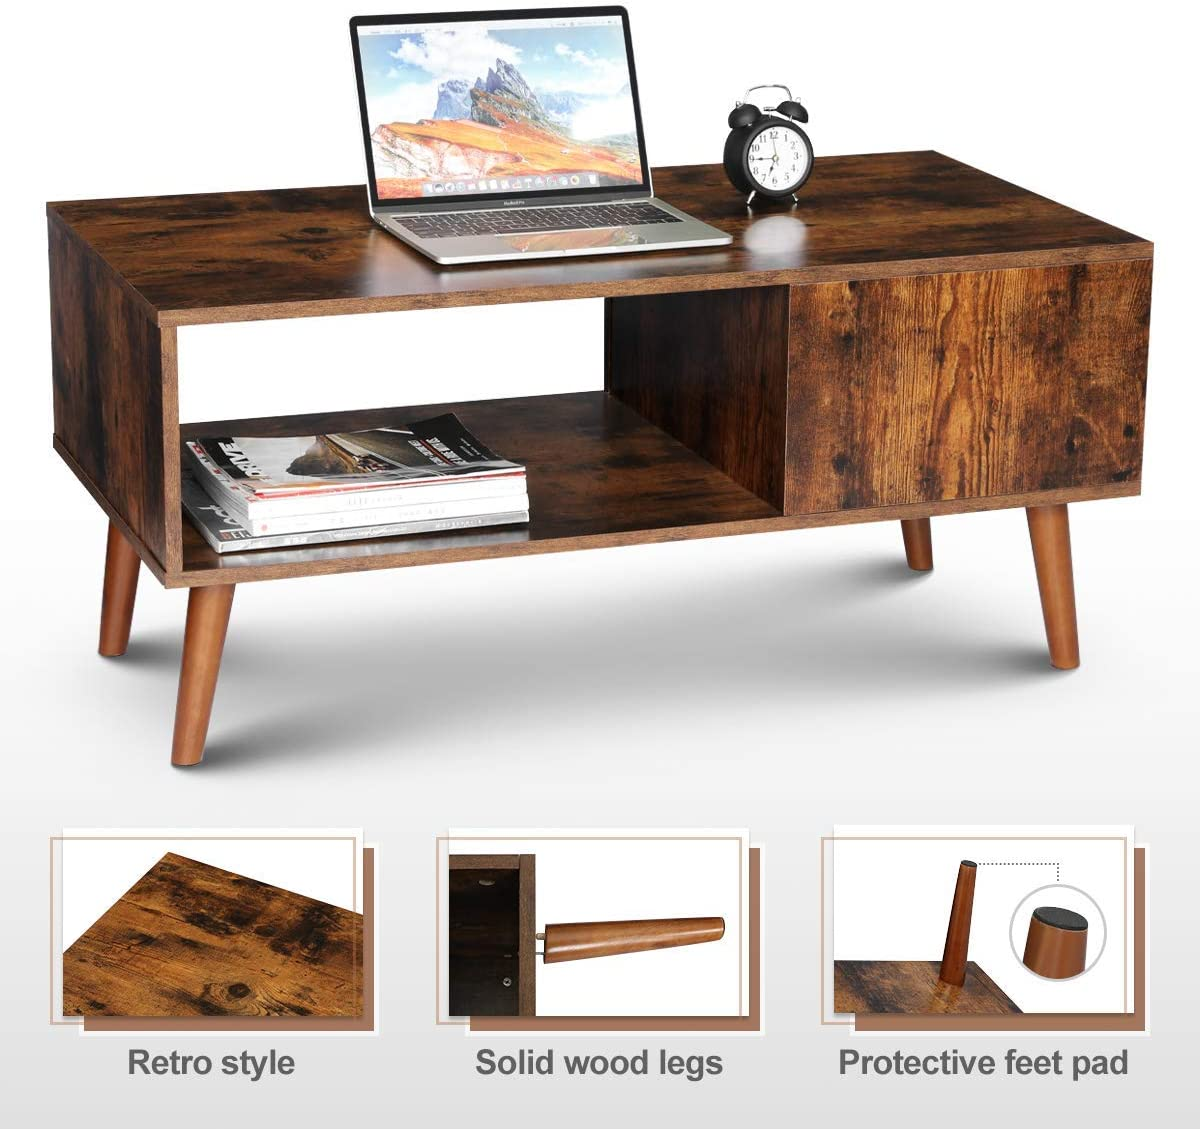 Picture of: Kingso Retro Coffee Table Mid Century Modern Coffee Table With Storage Shelf For Living Room Vintage Coffee Table Cocktail Table Tv Table Sofa Table Easy Assembly Wood Look Furniture Rustic Brown Home